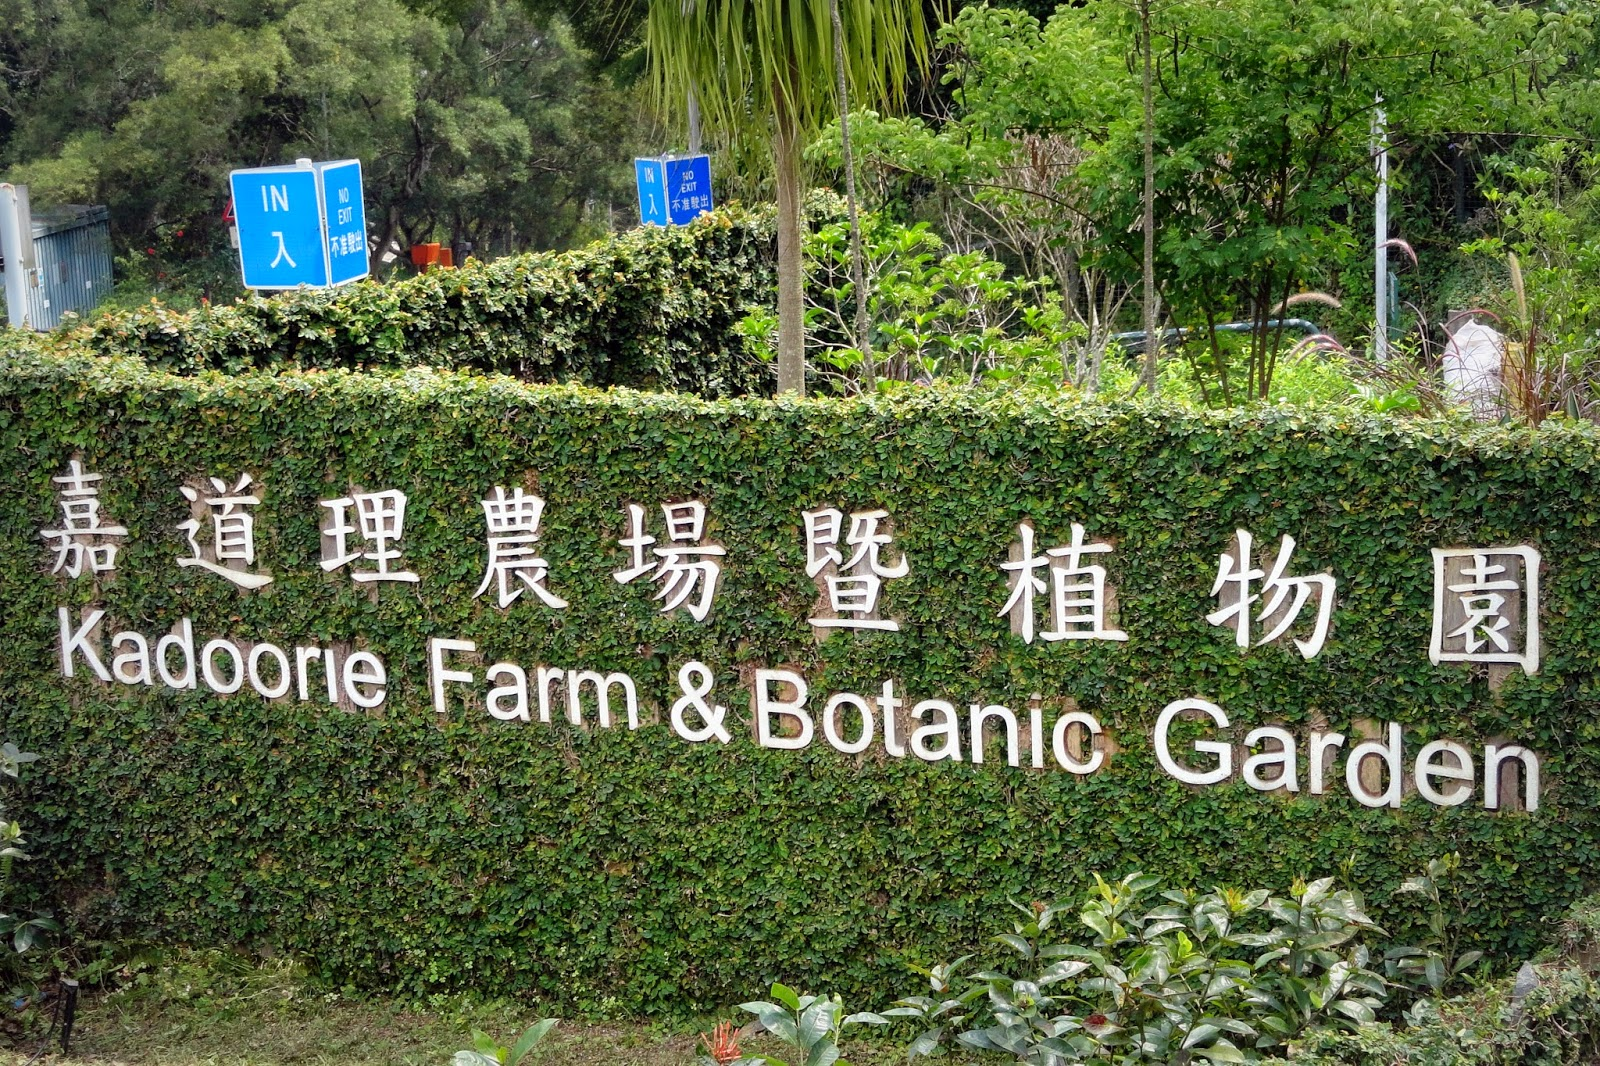 Kadoorie Farm and Botanic Garden